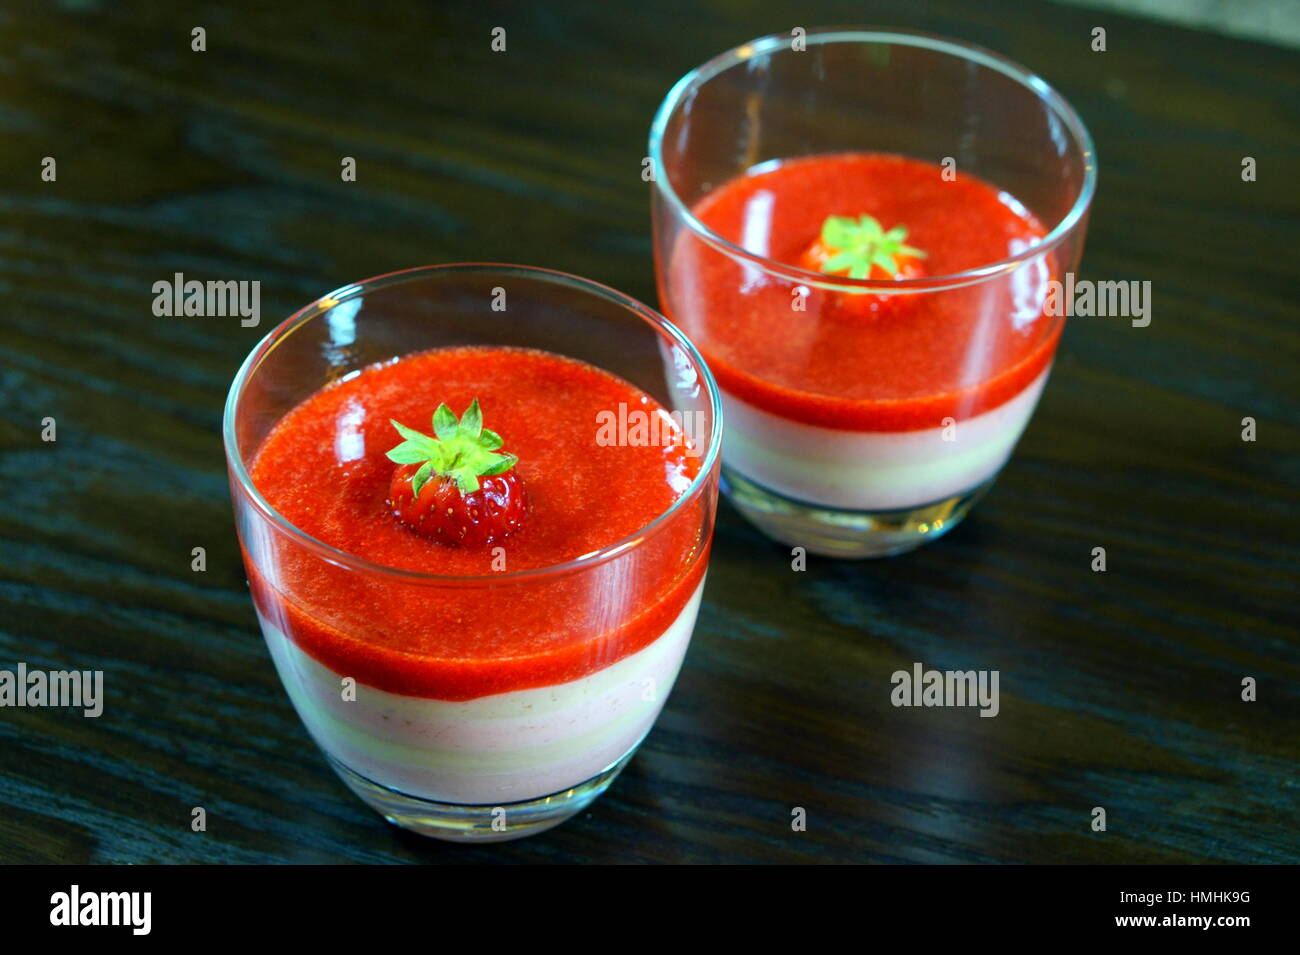 Tricolour strawberry and banana cream milkshake in mixed light lying on a dark wooden table - Stock Image